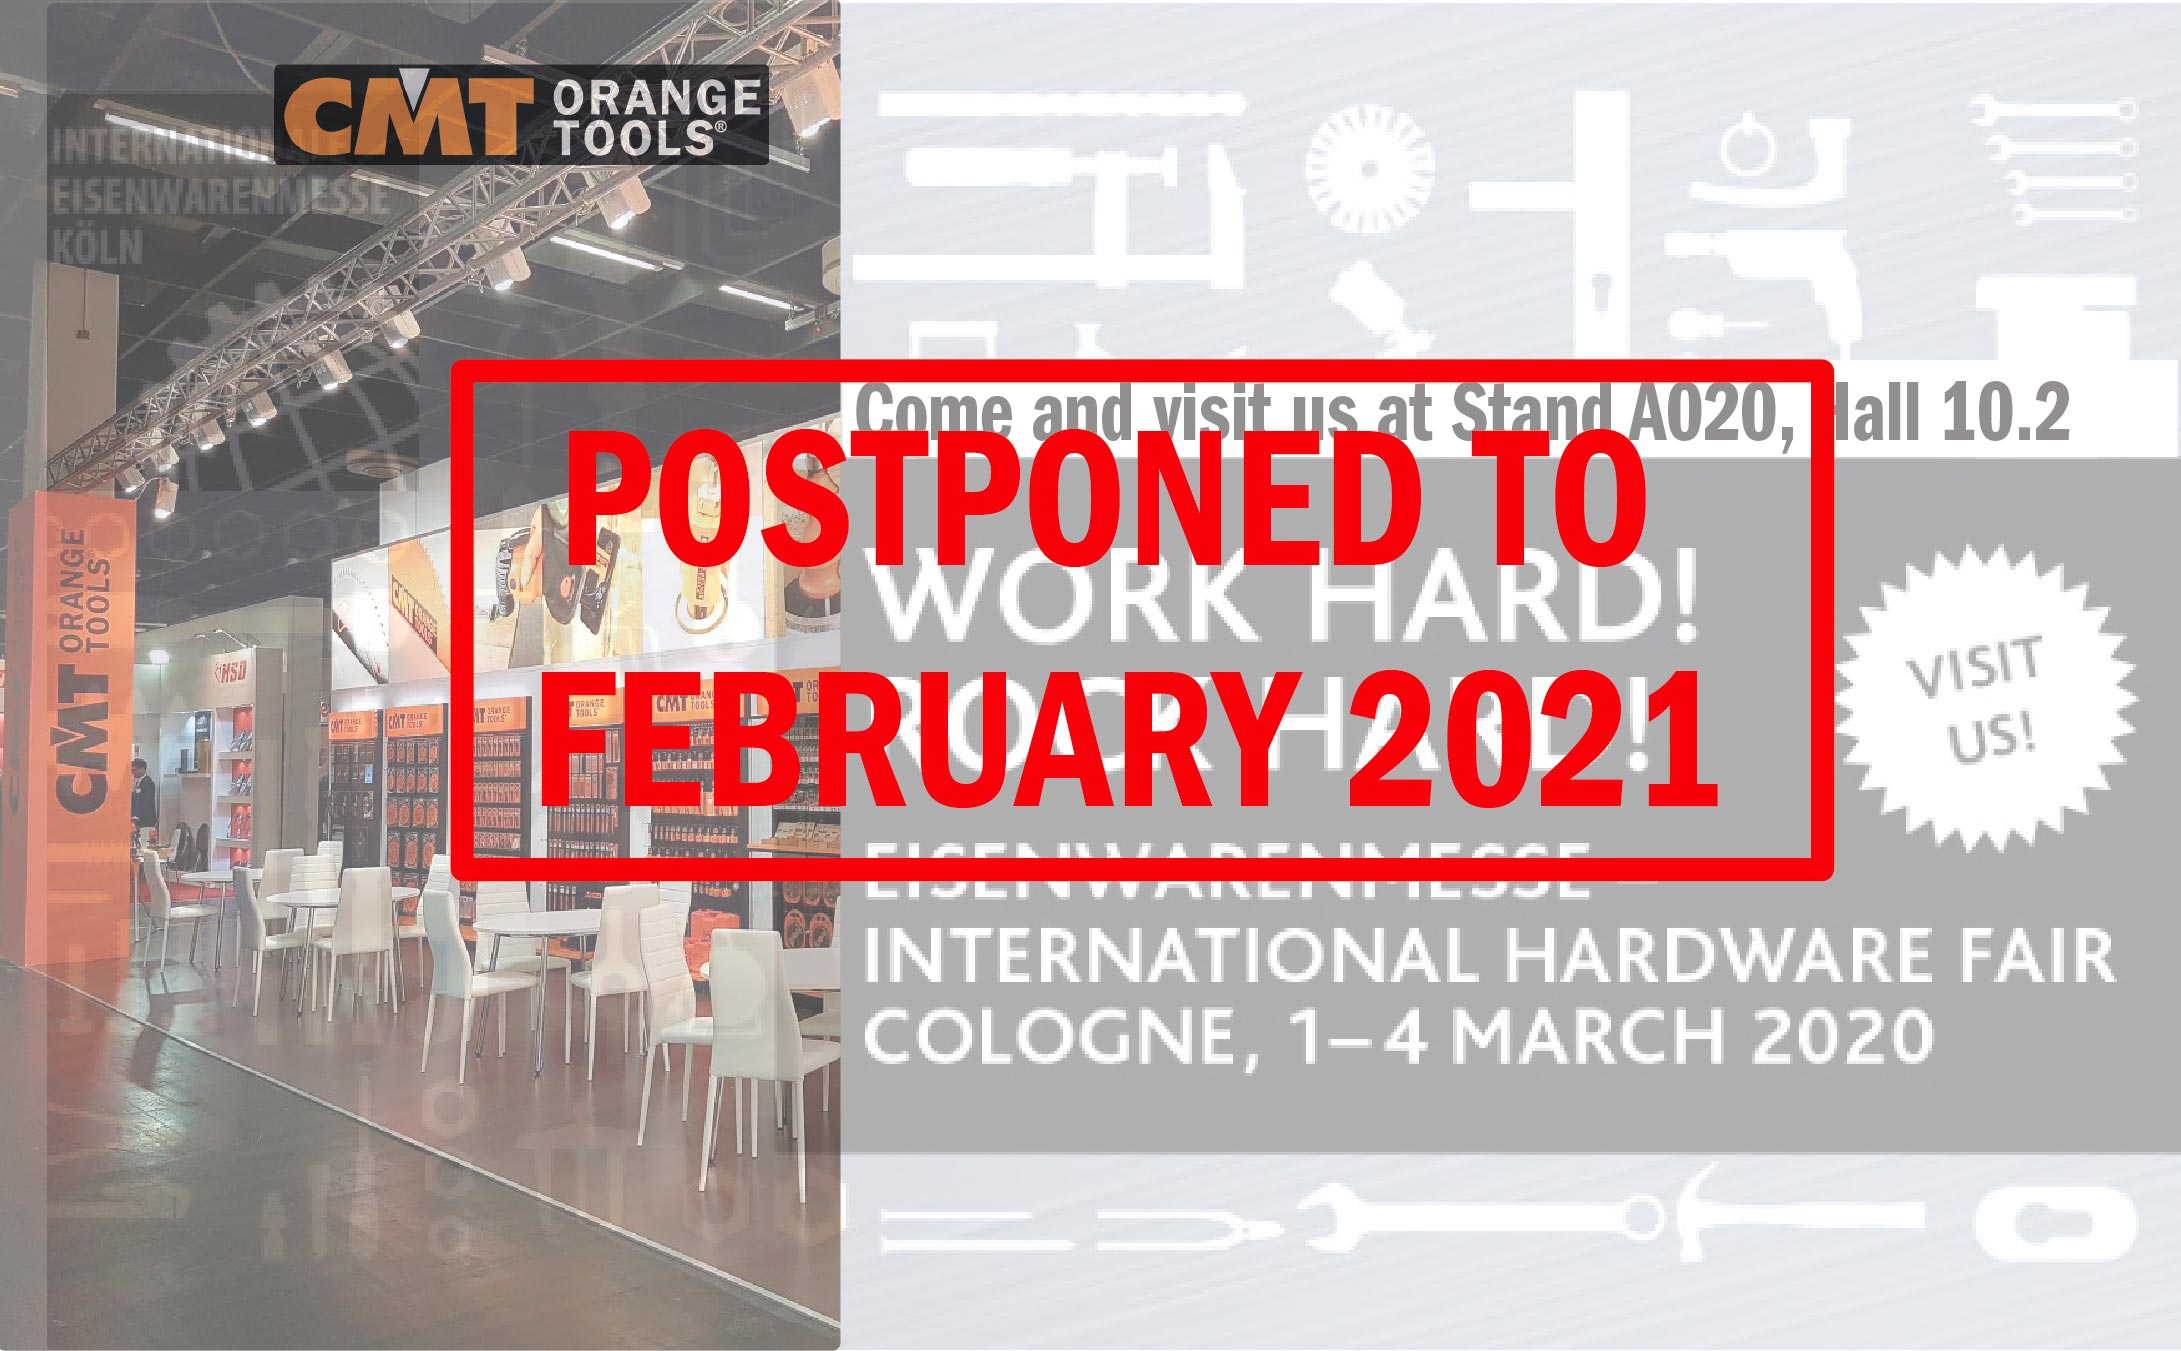 EISENWARENMESSE 2020 - Cologne, Germany - POSTPONED